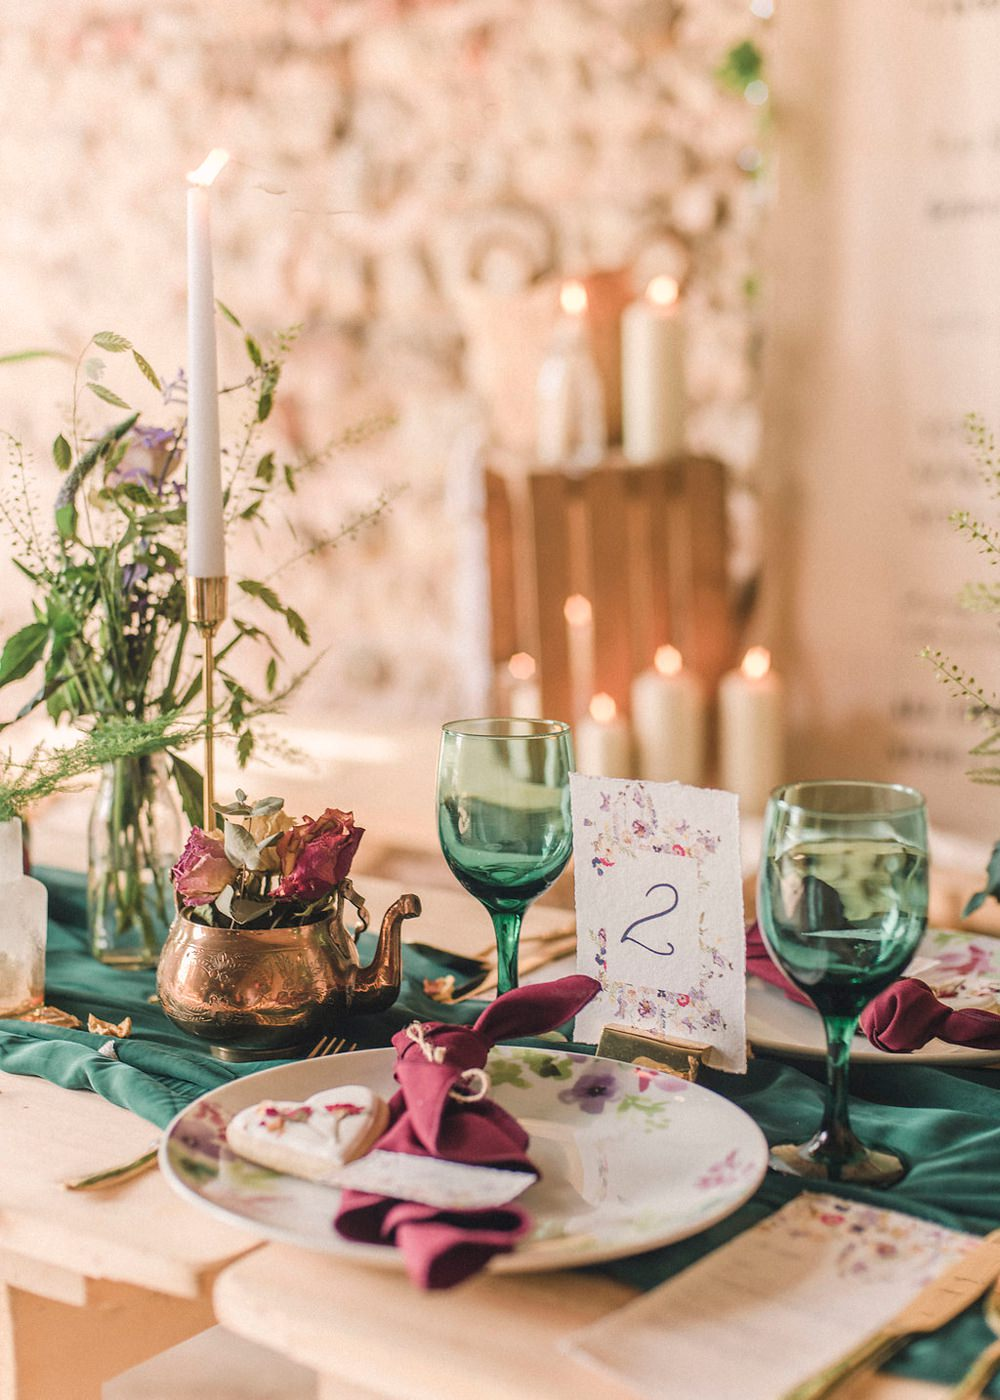 Place Setting Table Decor Napkin Floral Plates Heart Cookie Favours Green Linen Runner Boho Woodland Wedding Ideas Camp Katur Emily Olivia Photography